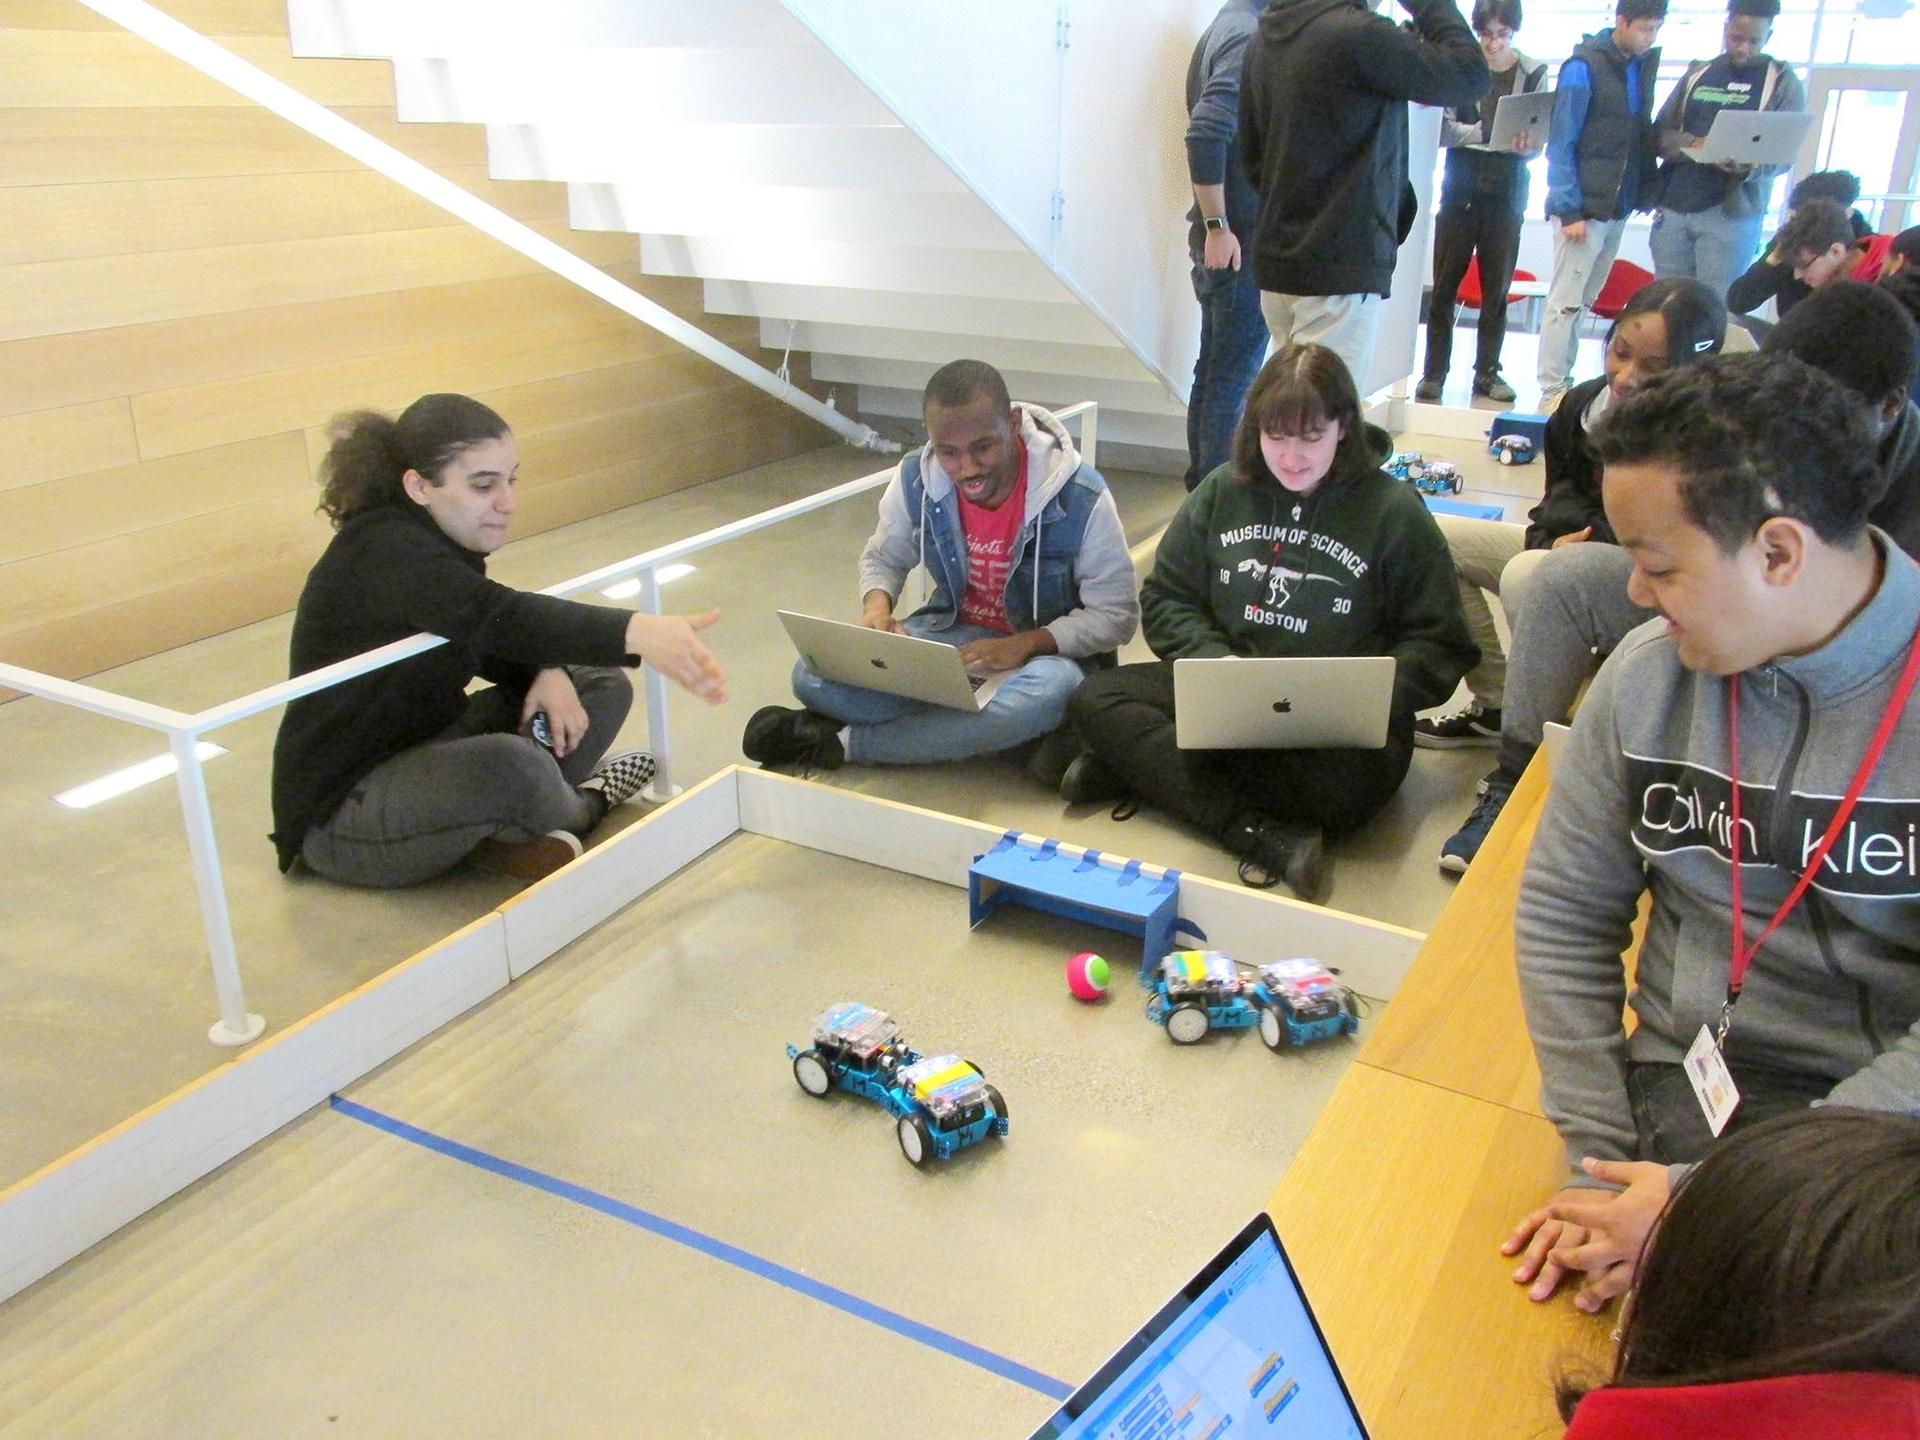 Students seated on the ground, looking at robotics devices